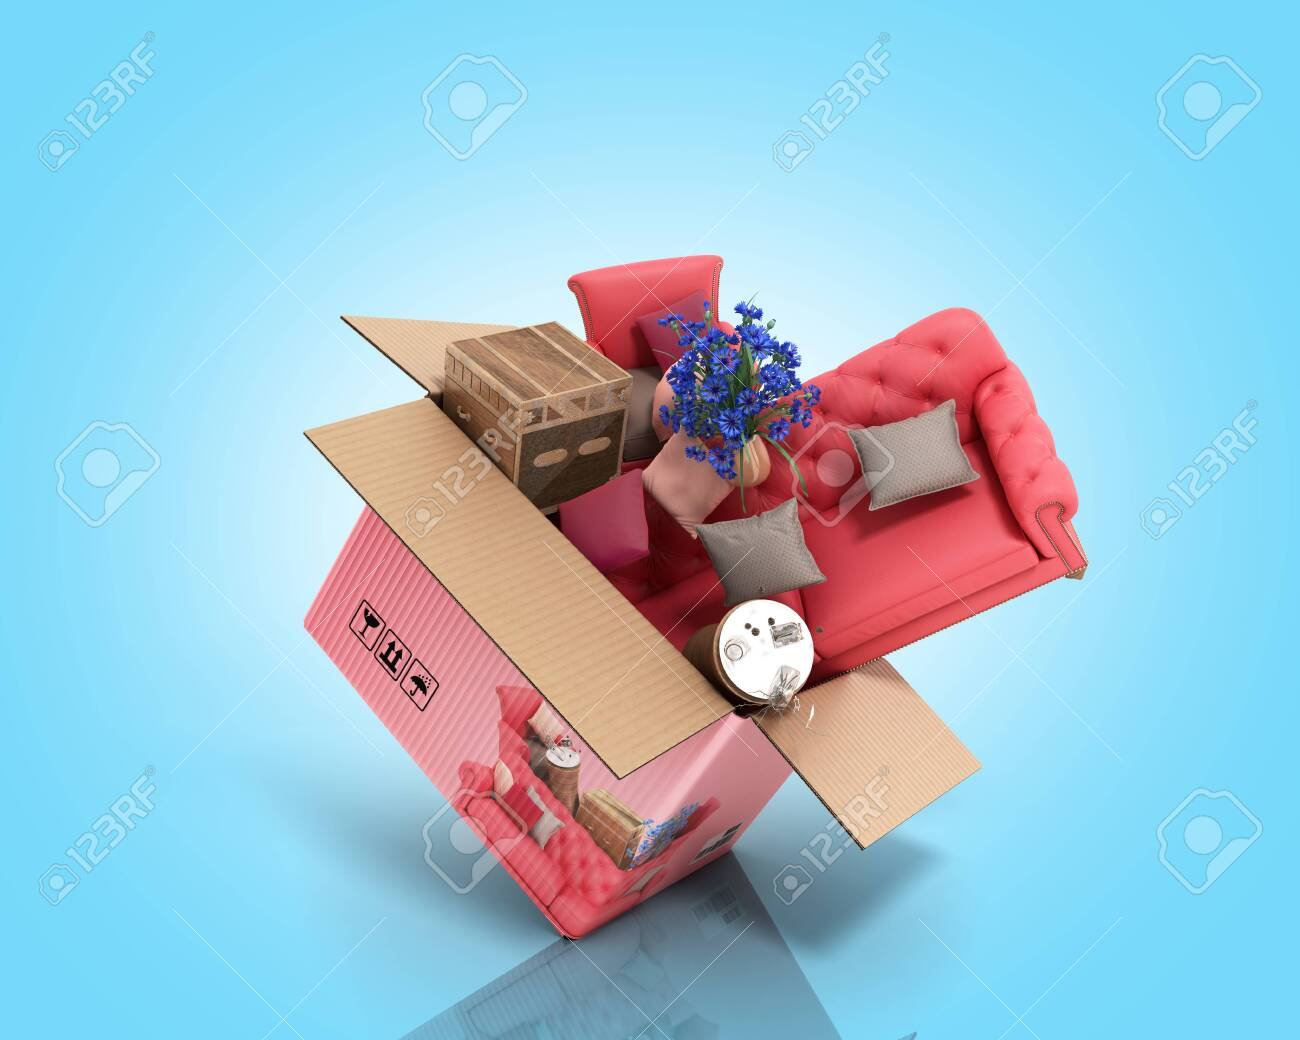 Concept Of Product Categories Furniture And Decor Fly Out Of.. Stock Photo,  Picture And Royalty Free Image. Image 127798334.